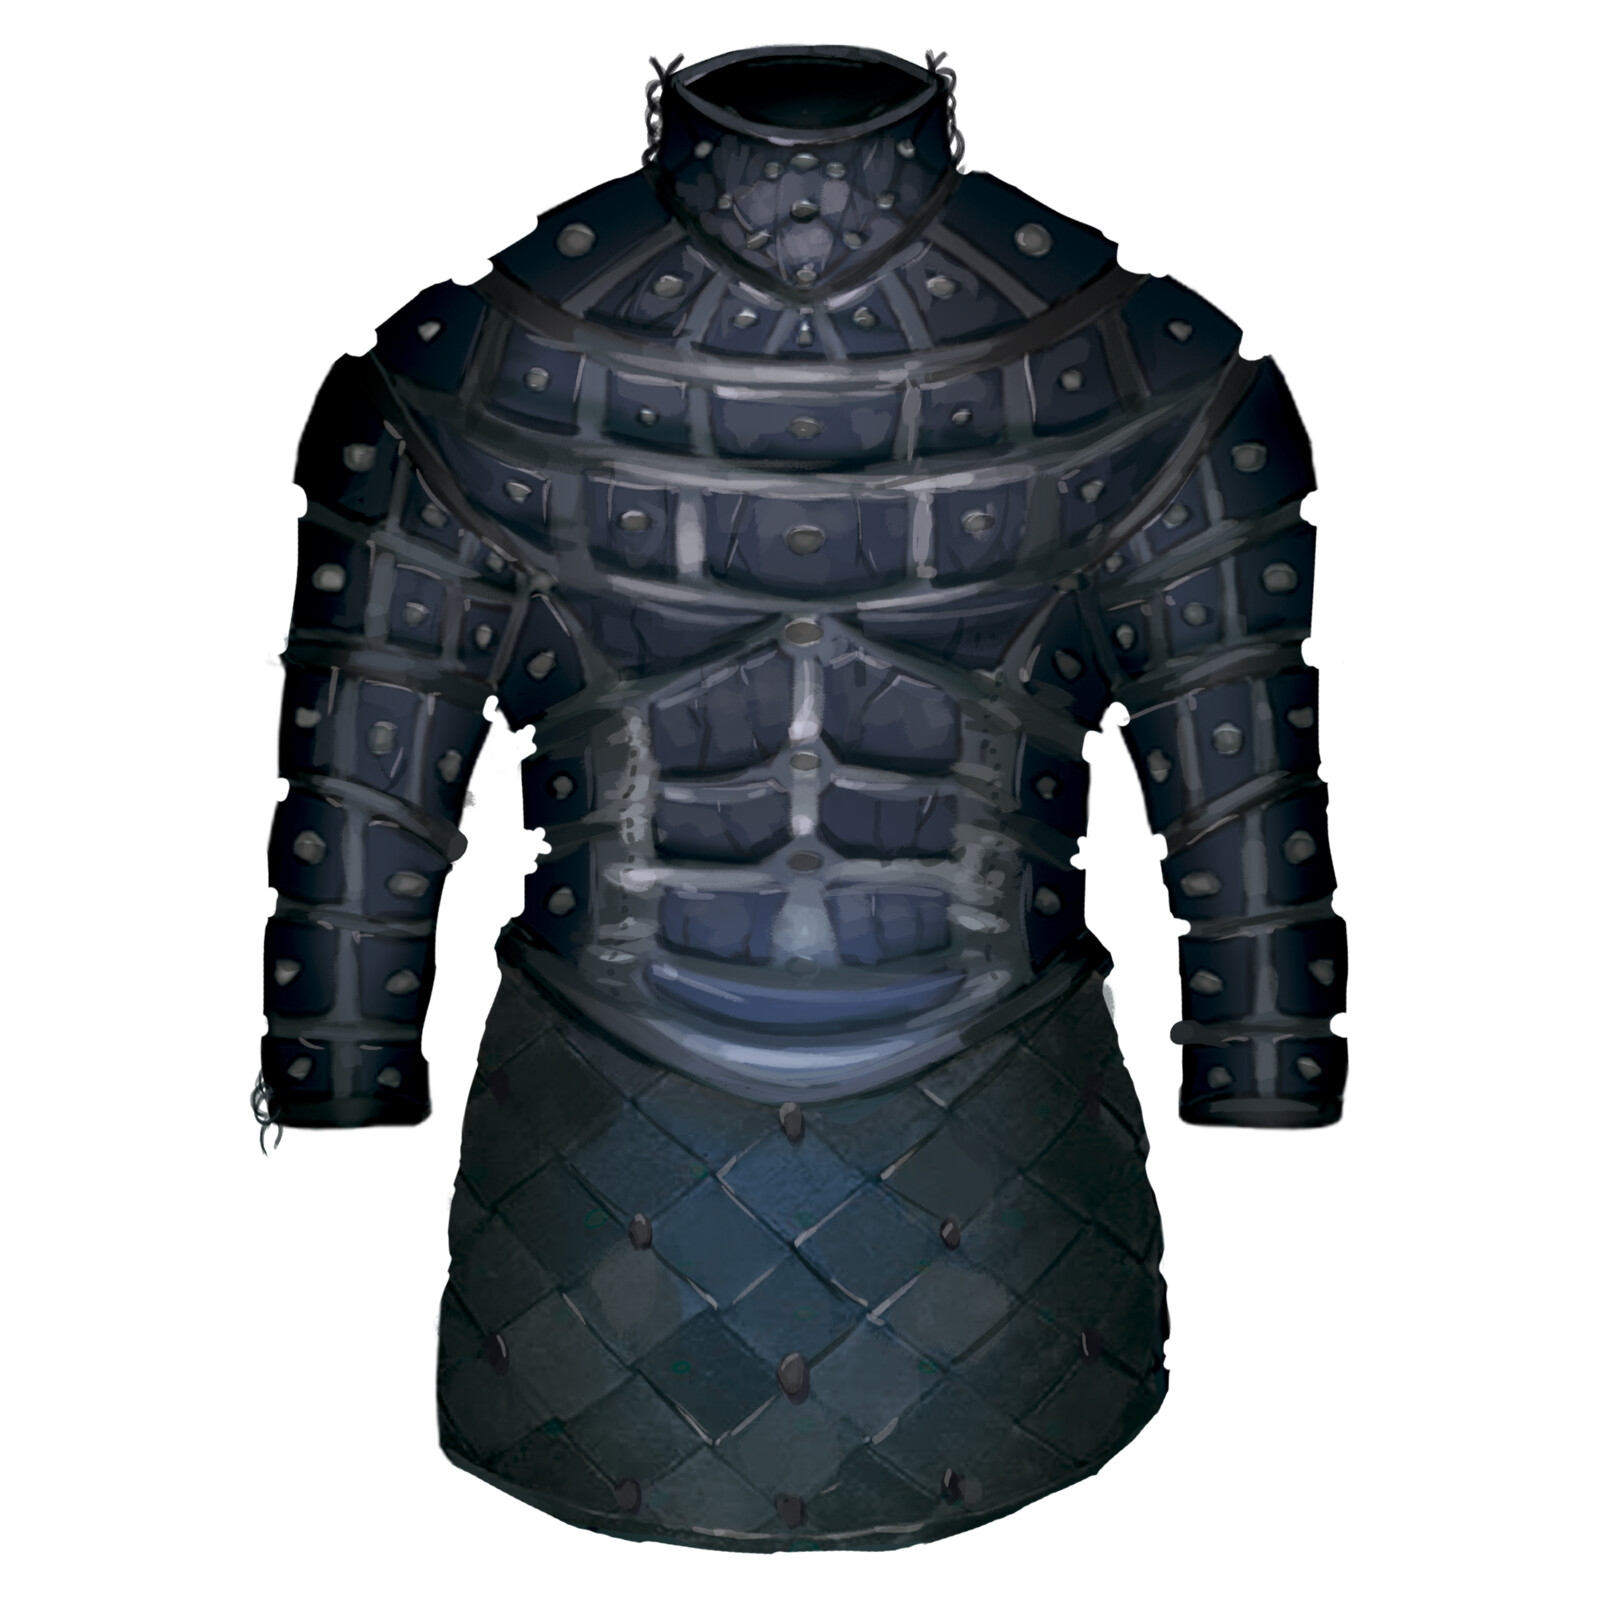 Armor of the Unborn